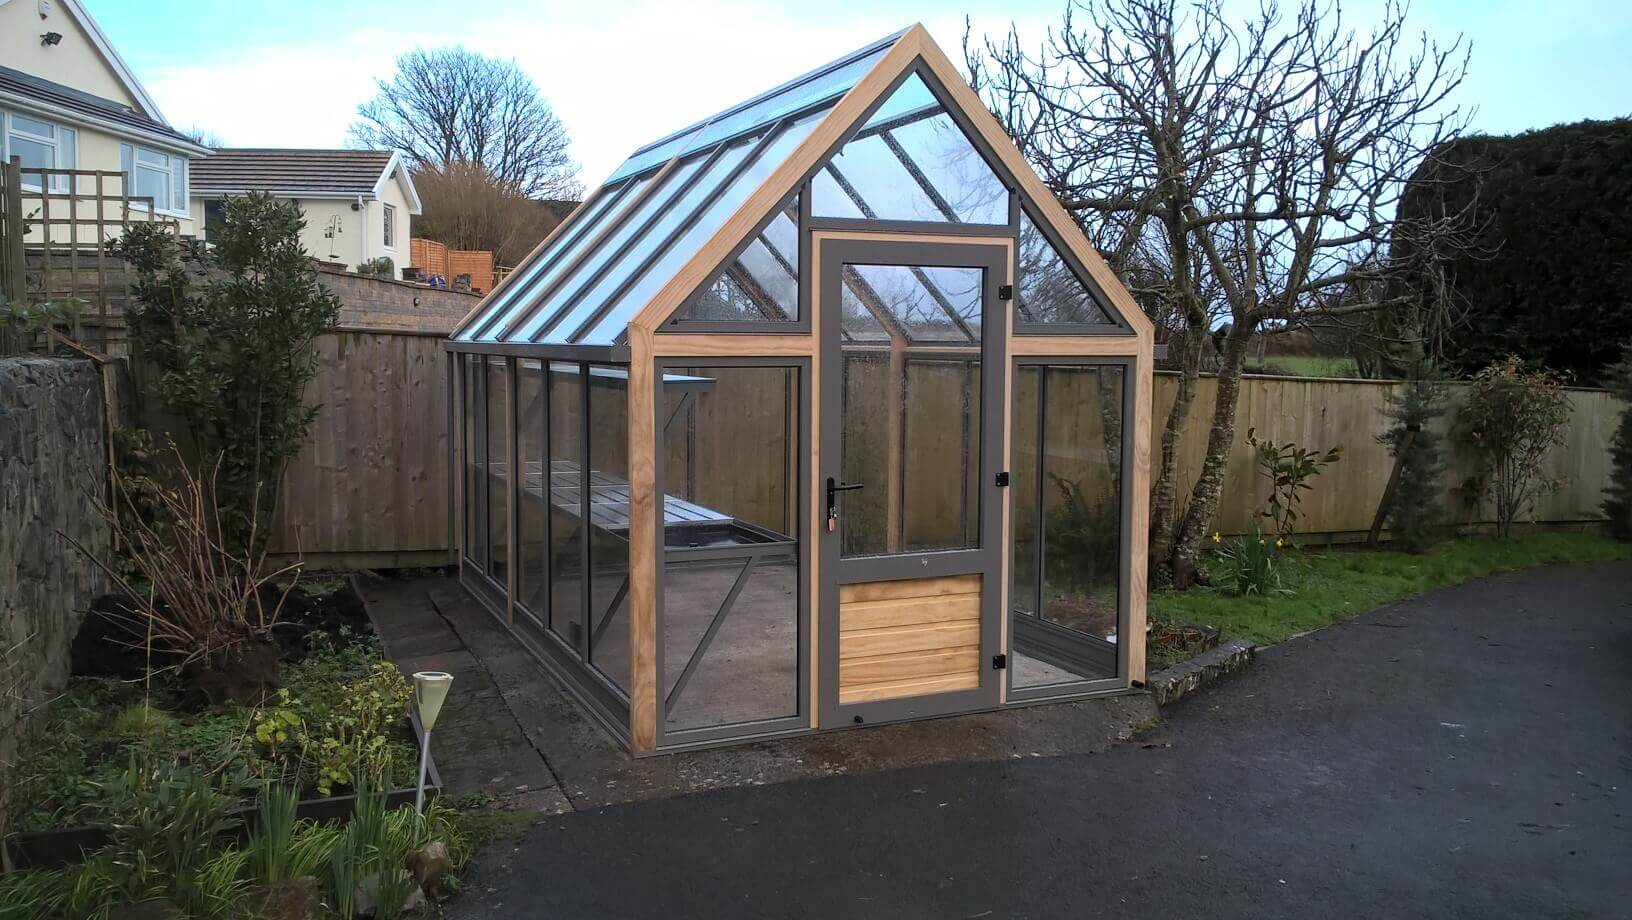 Cultivar Uk Gallery Greenhouse Pictures Videos And